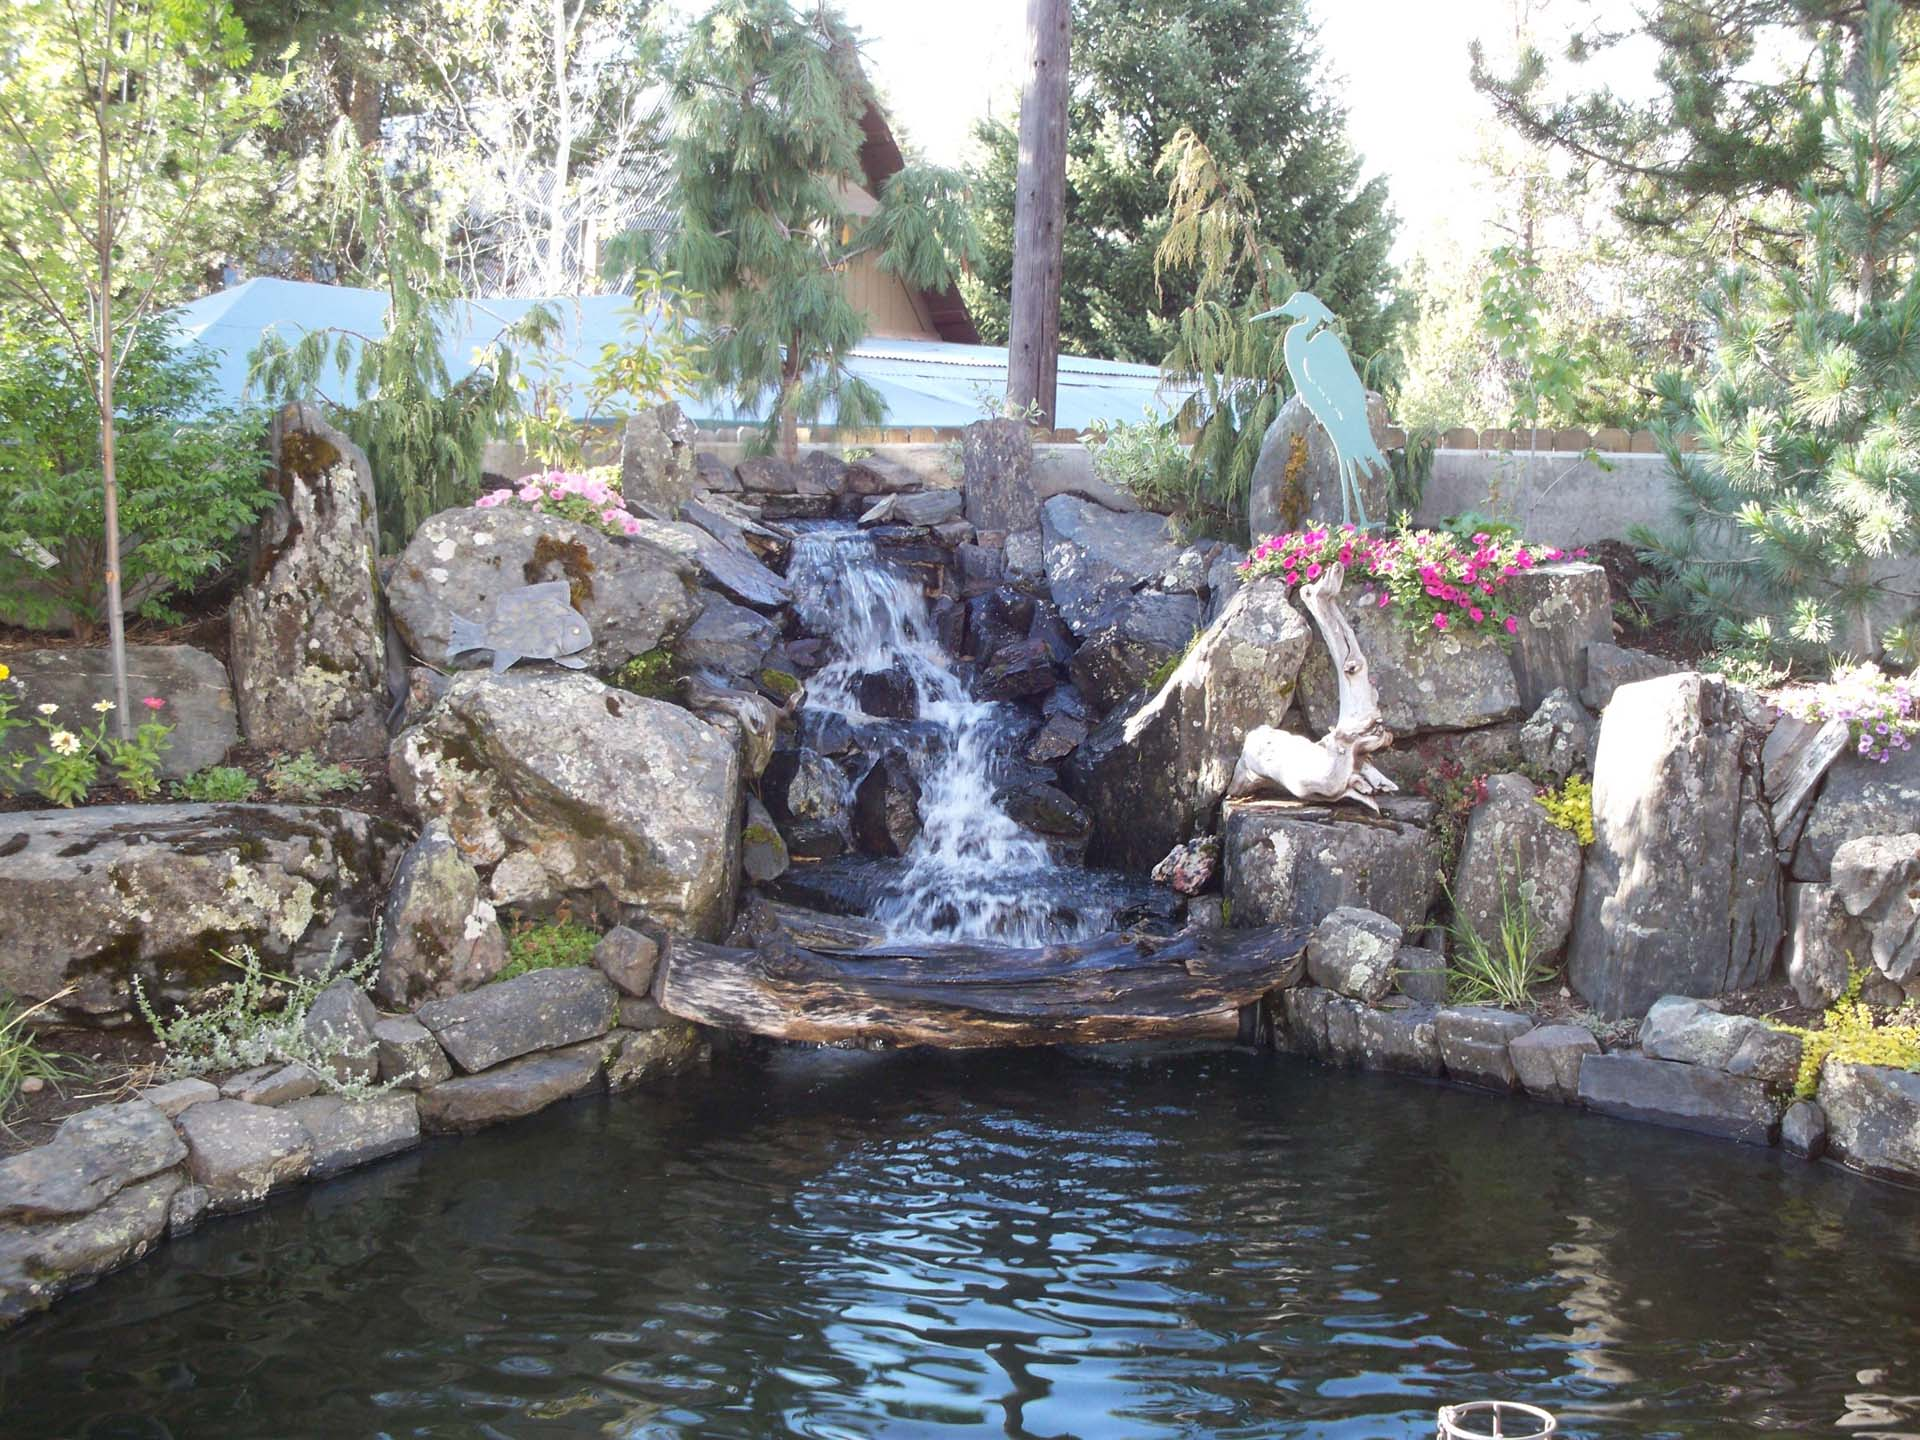 Landscape construction buzz baker general contracting llc for Koi pond contractors